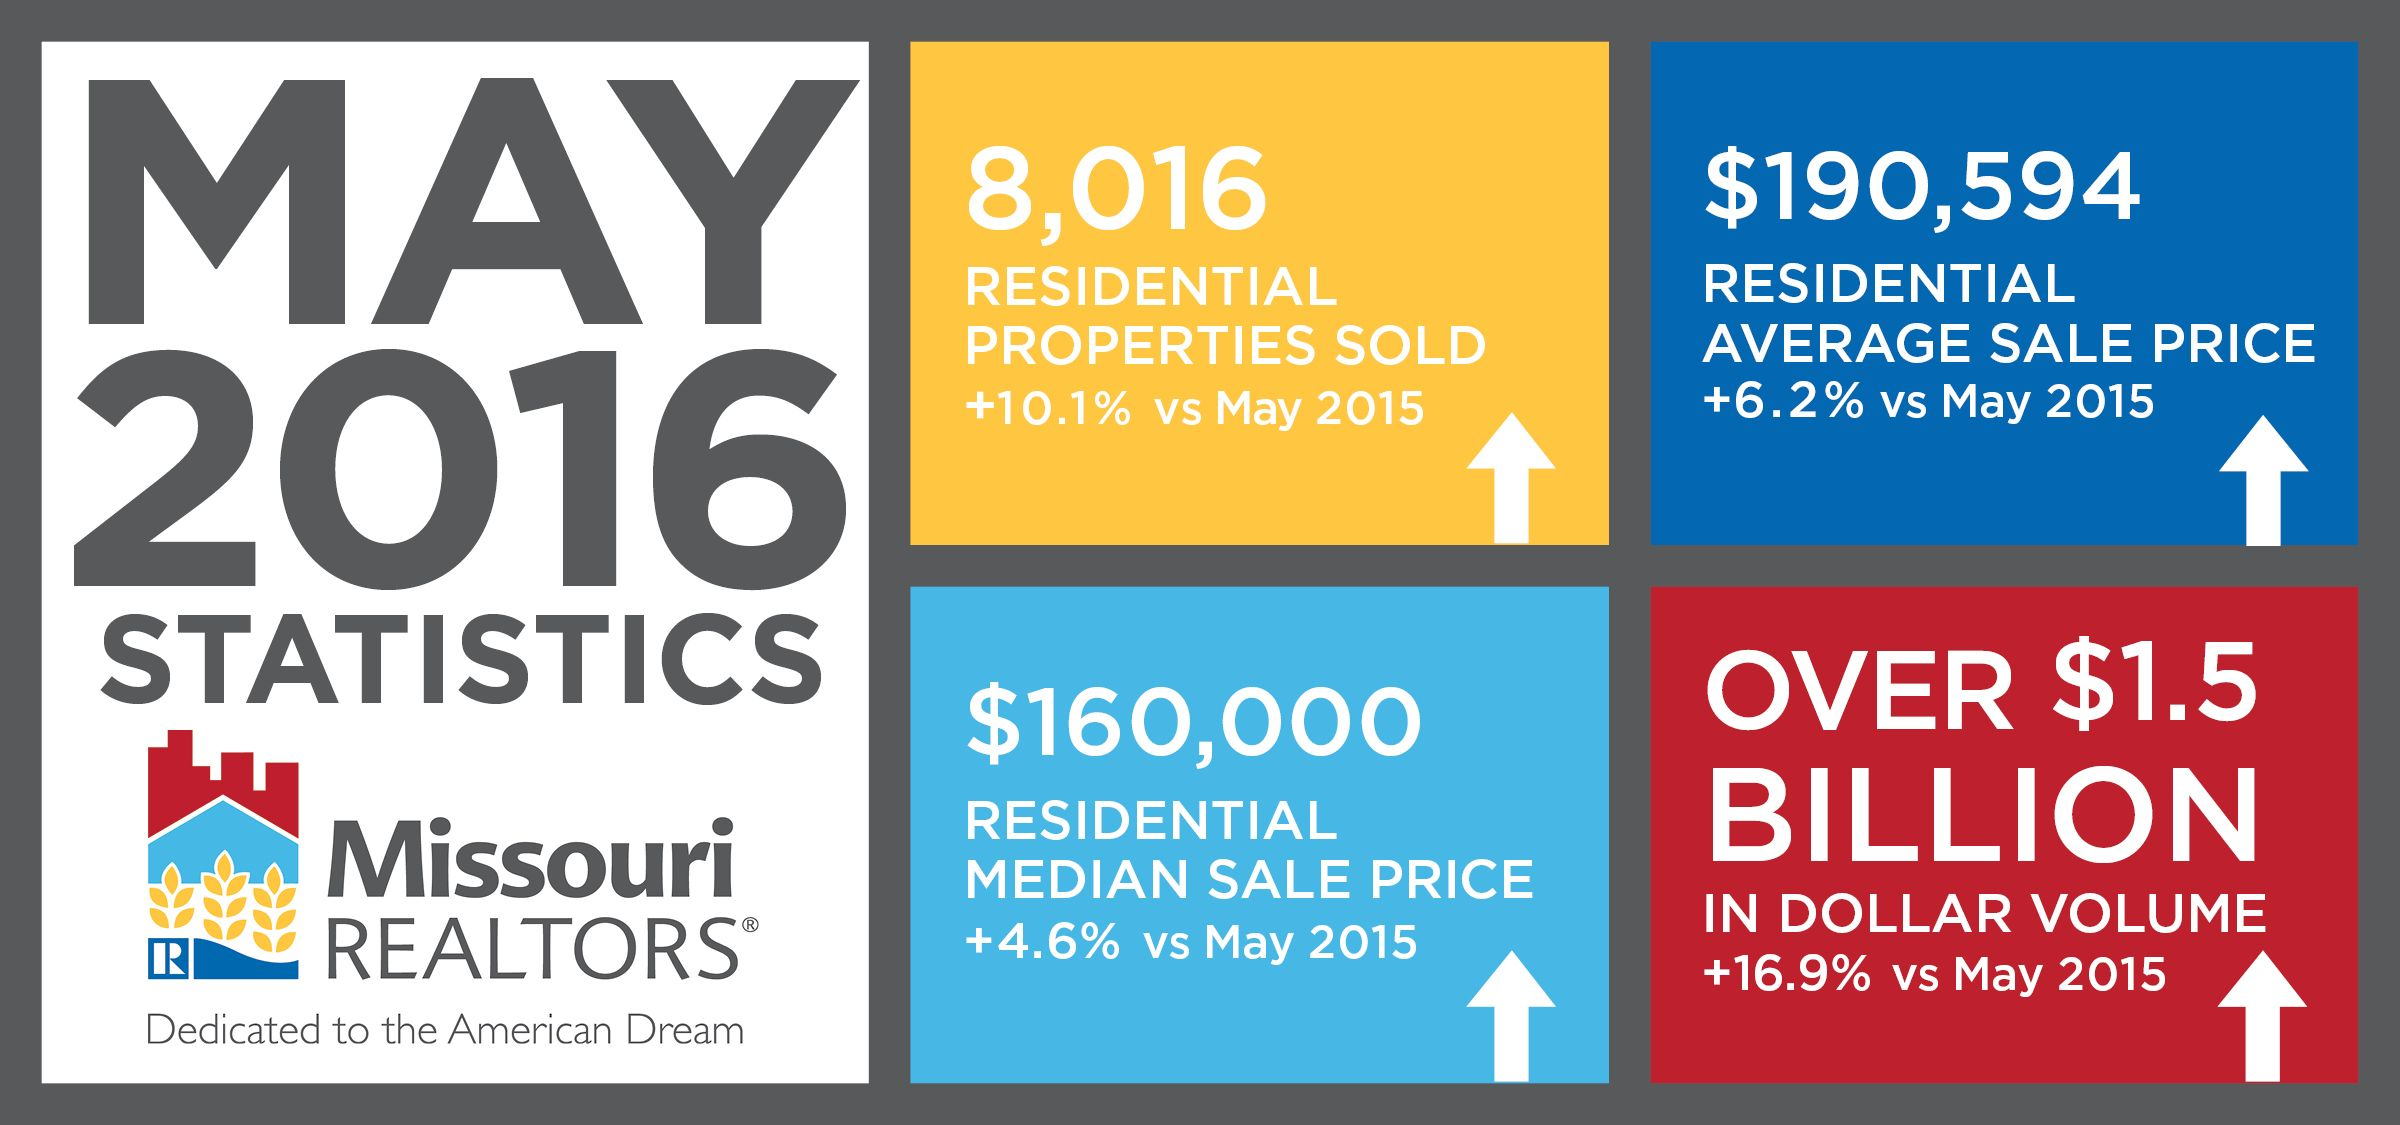 Sales Report for May 2016.